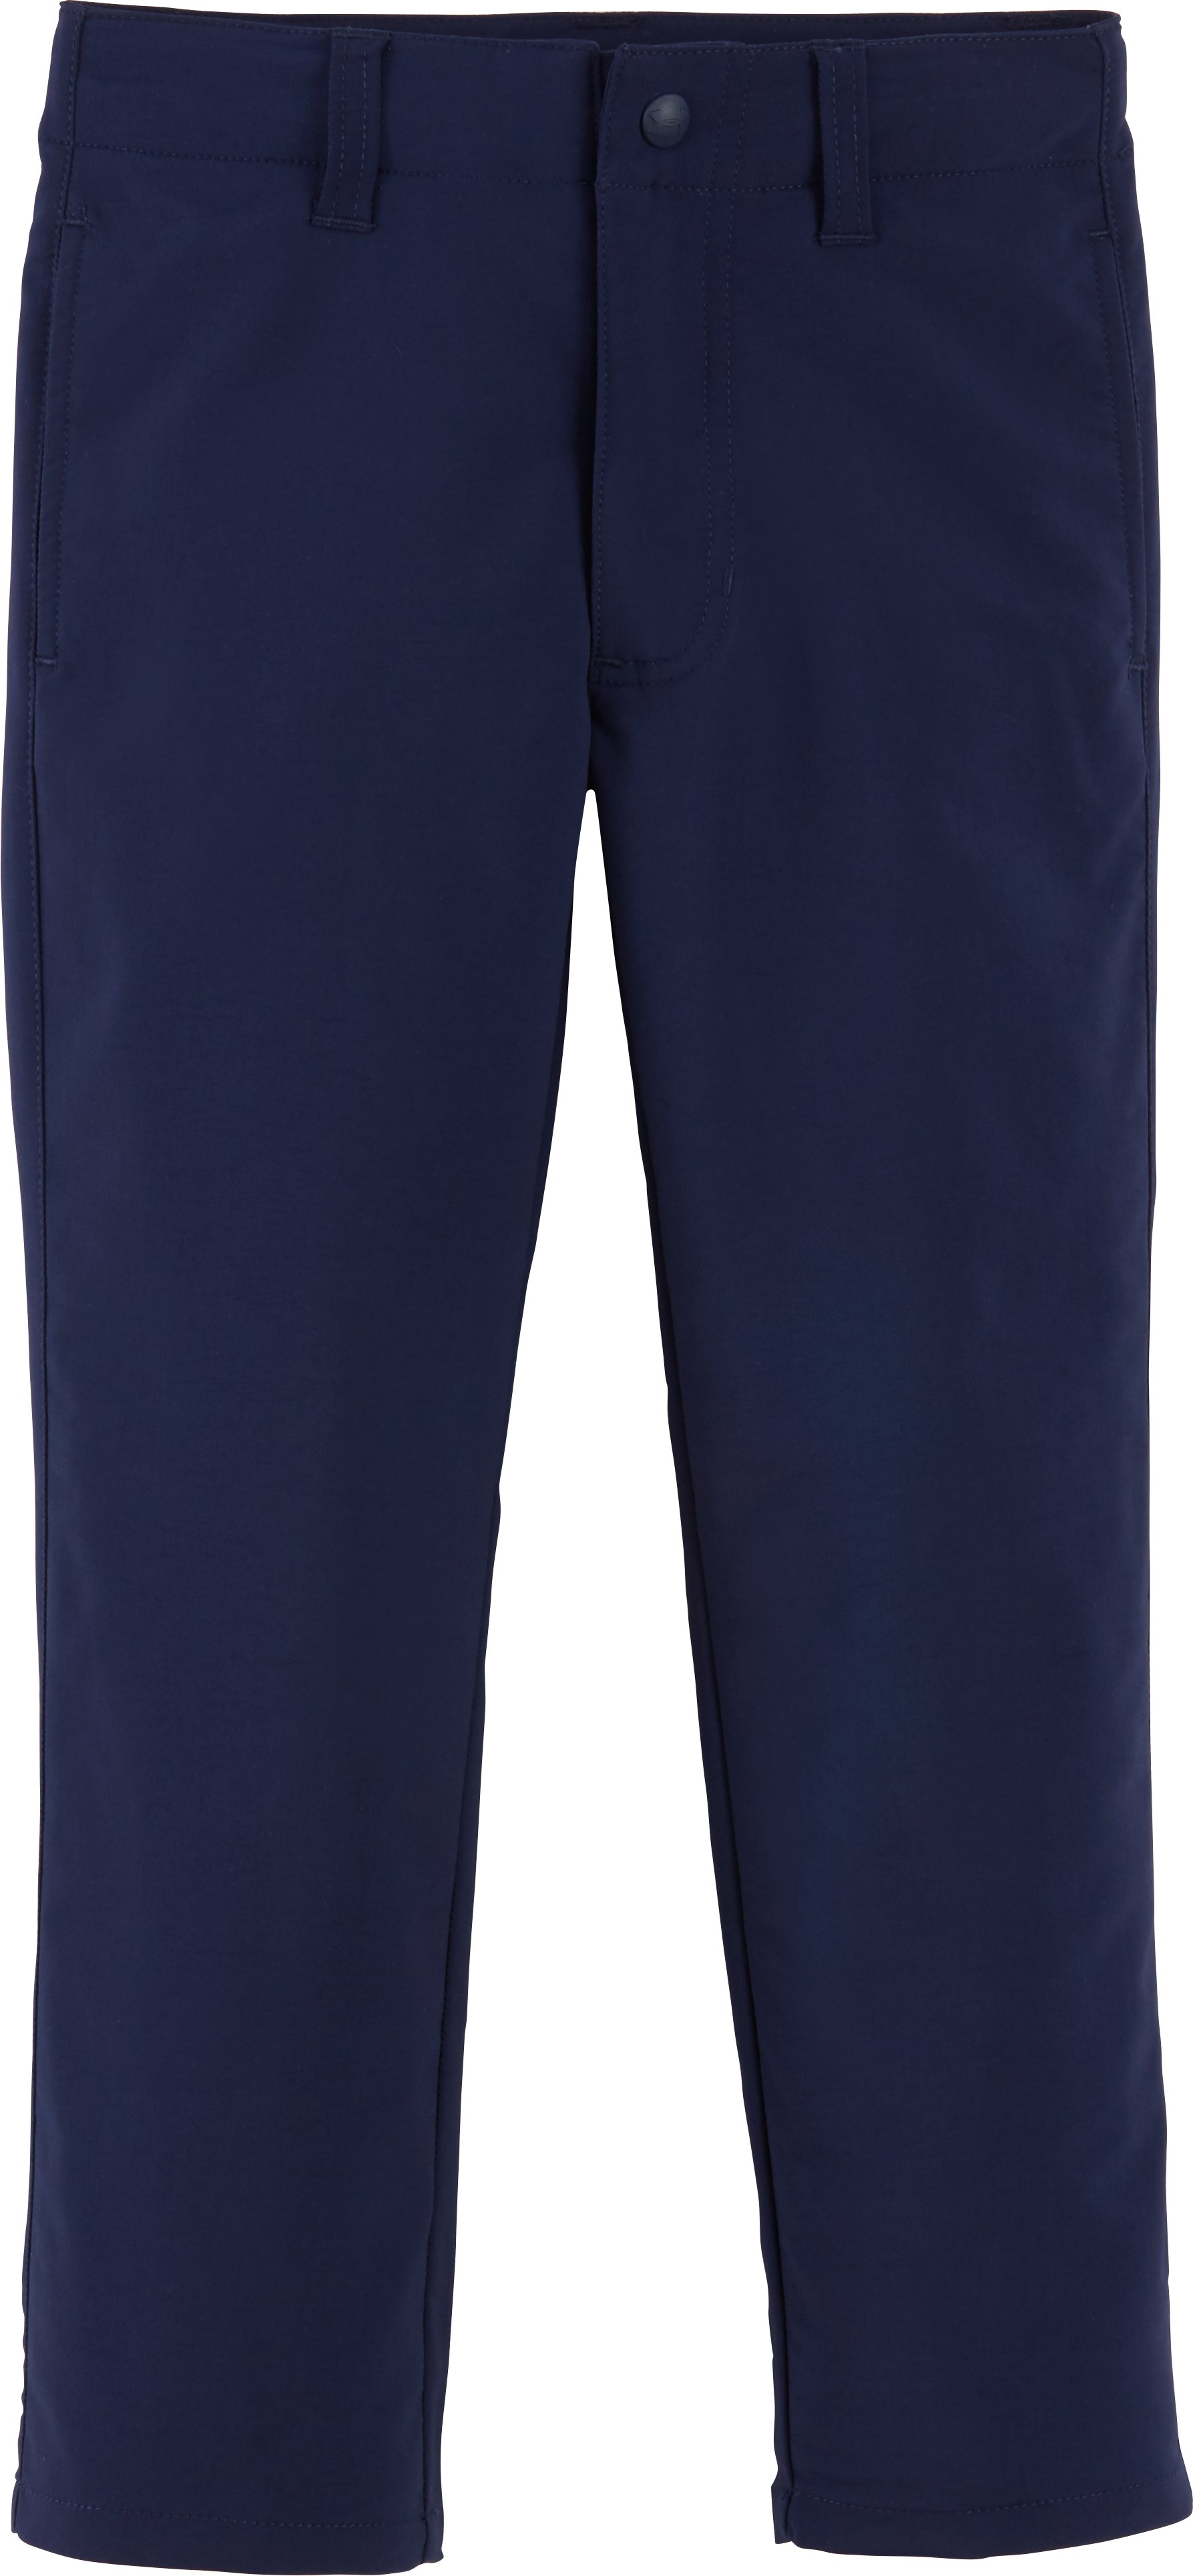 Boys' Infant UA Match Play Pants, NAVY SEAL, Laydown